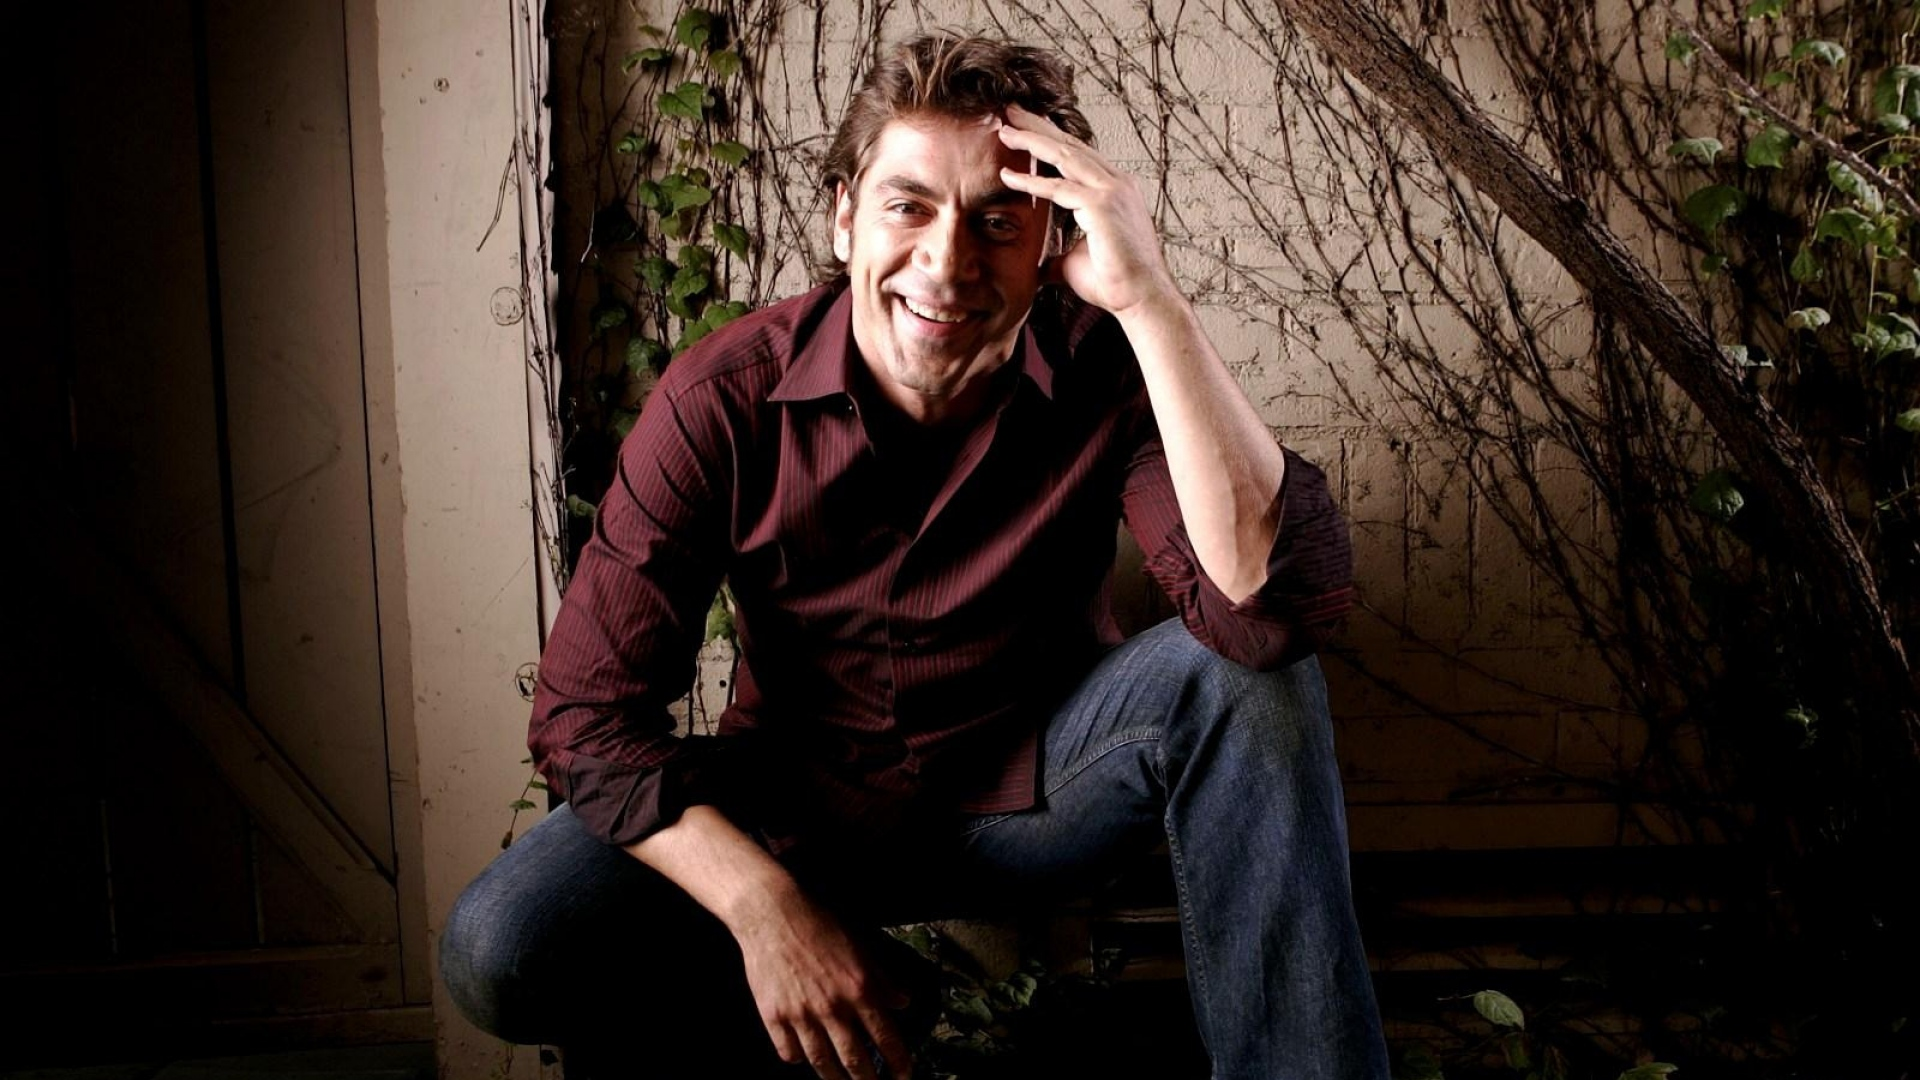 Download Wallpaper 1920x1080 Javier Bardem, Brunette, Man